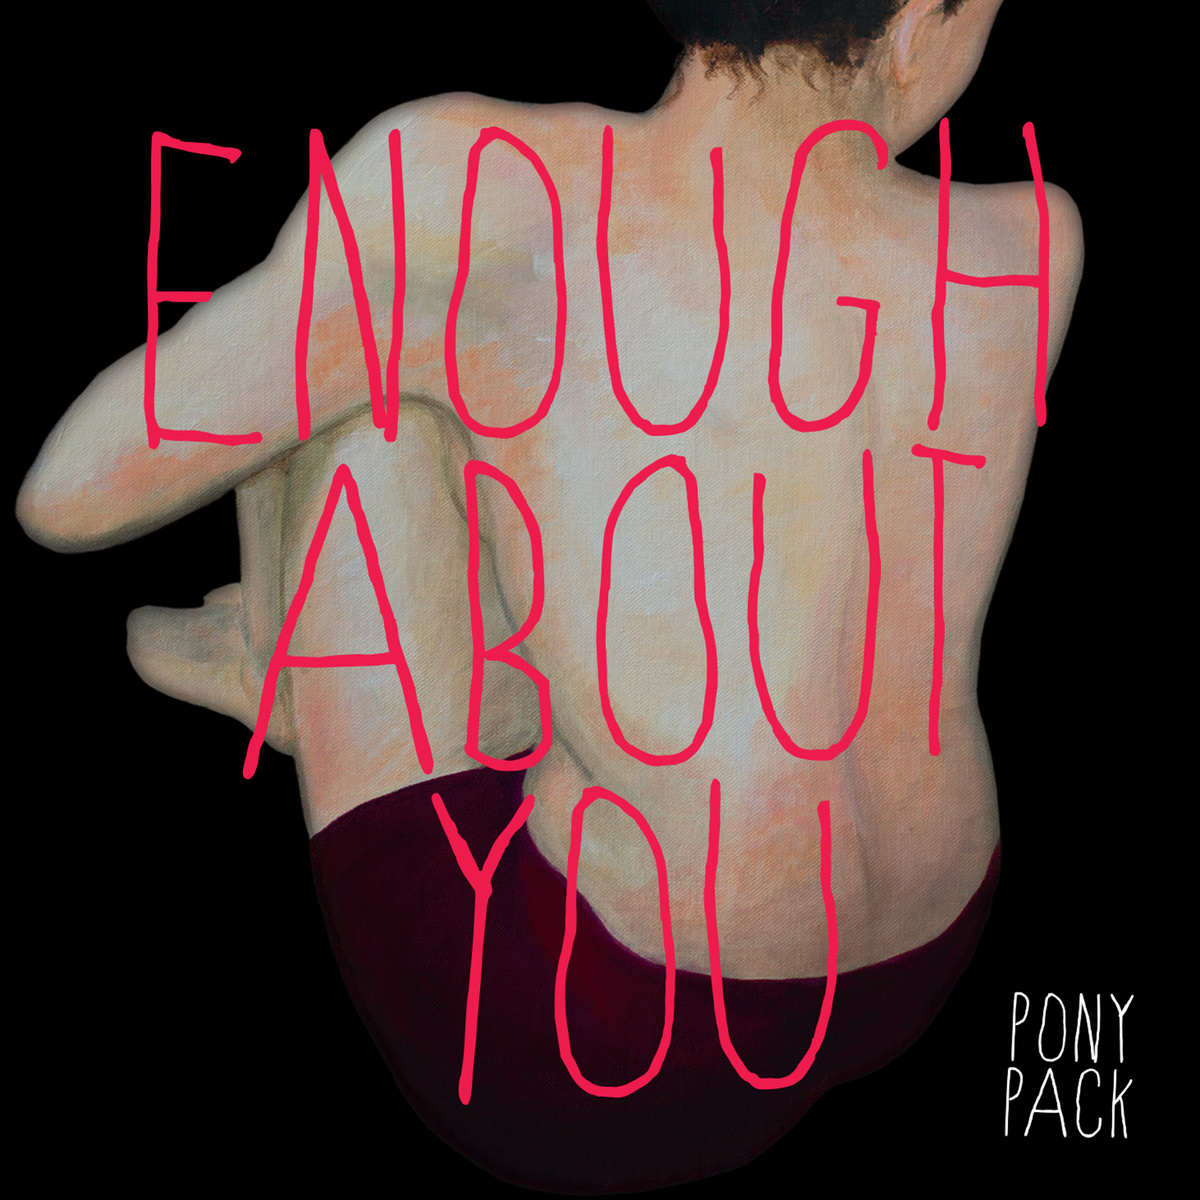 Pony Pack – Enough about you